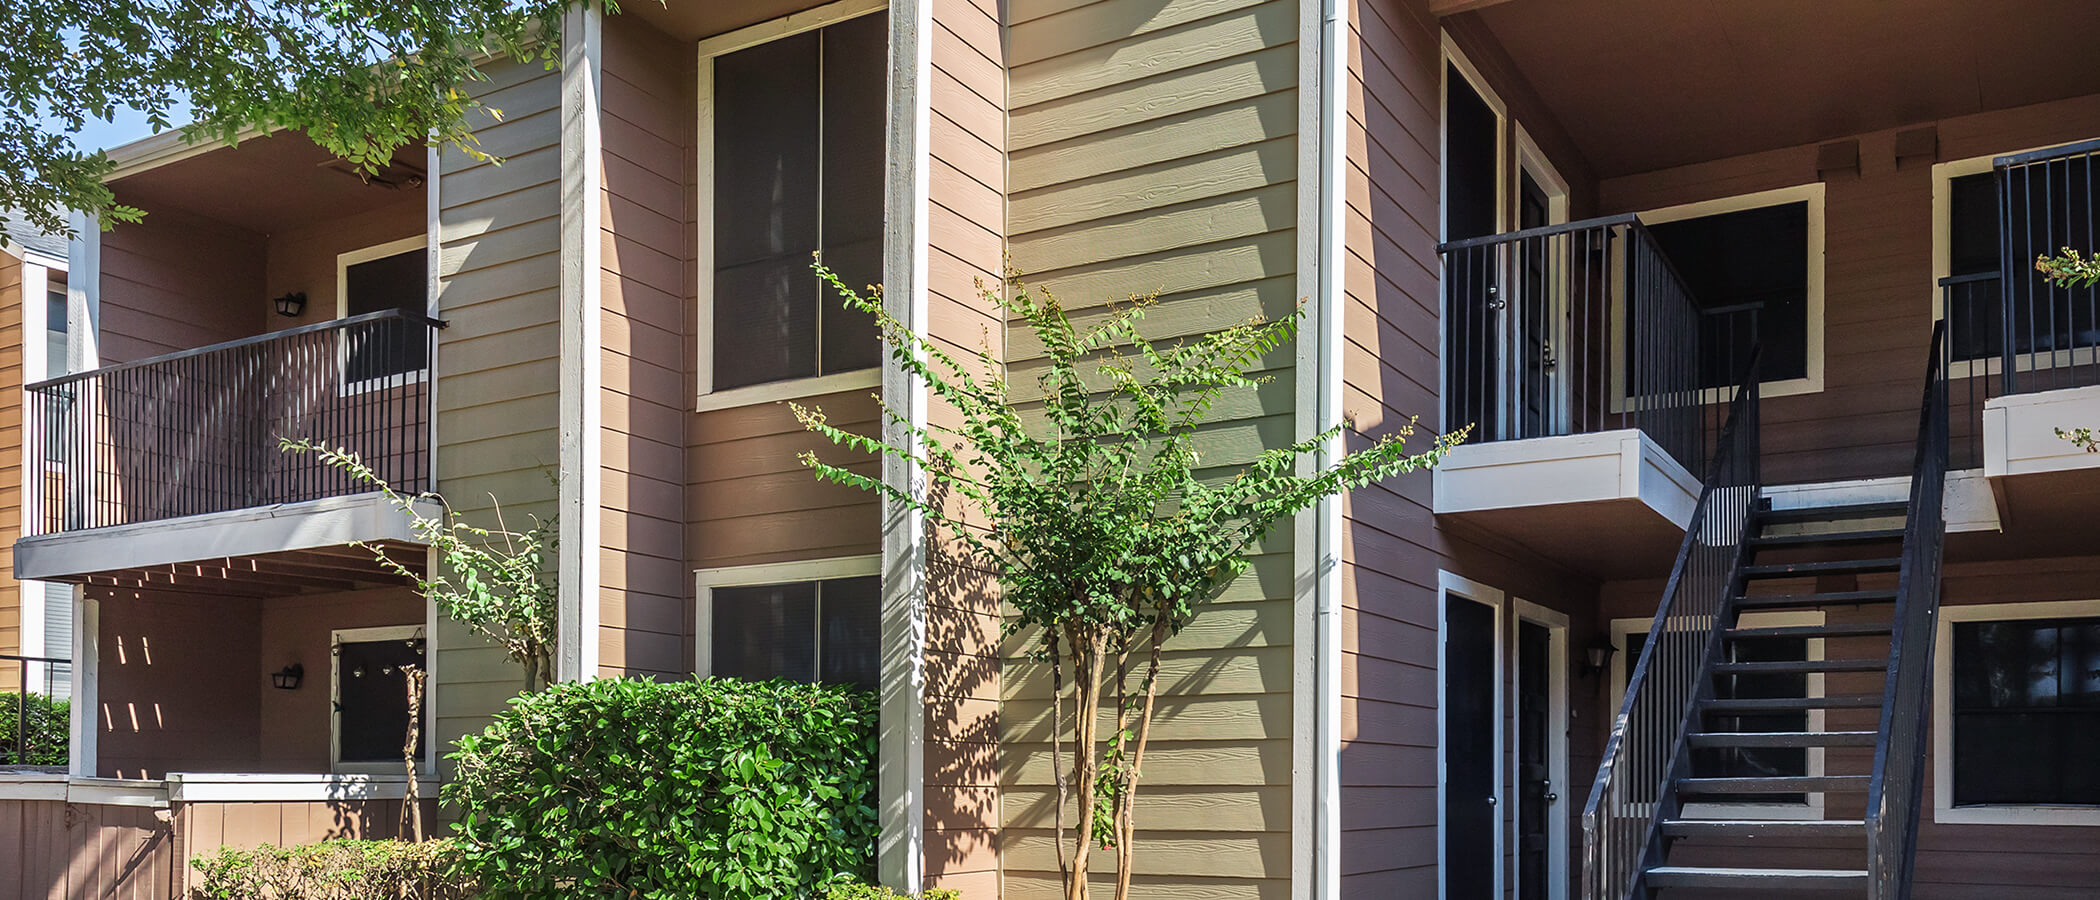 Highland Cove Apartments slideshow image 2